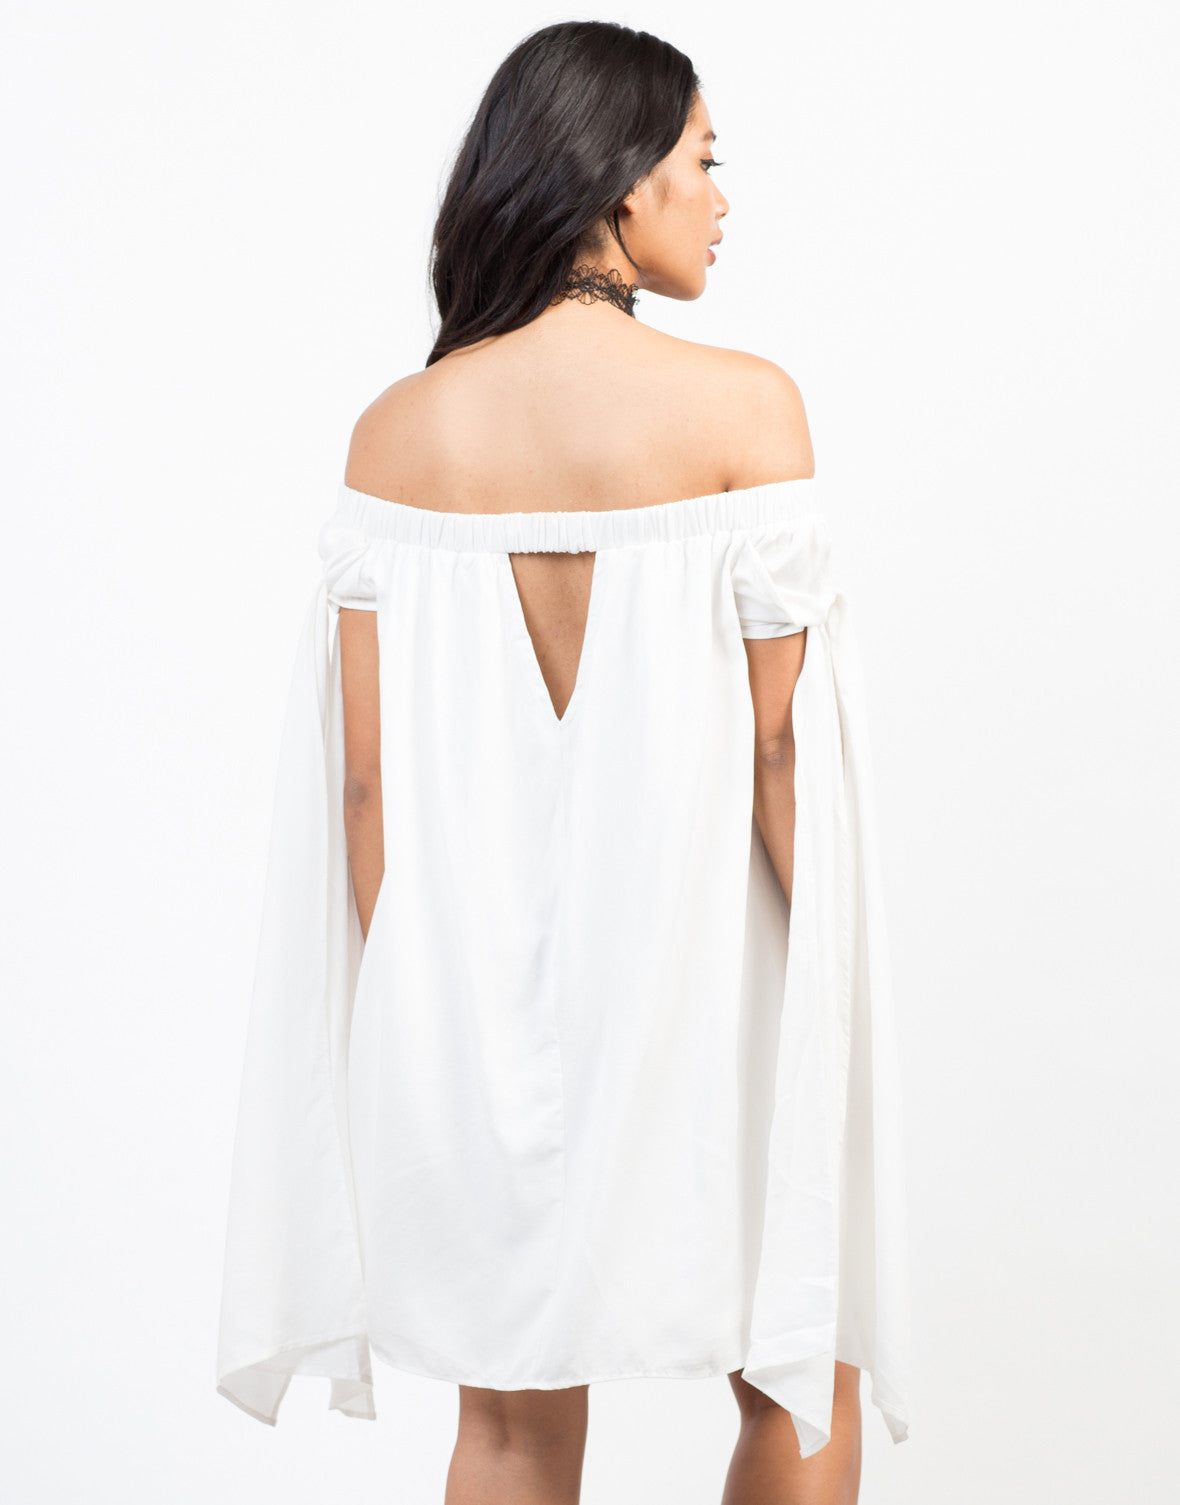 Back View of Free Flow White Dress